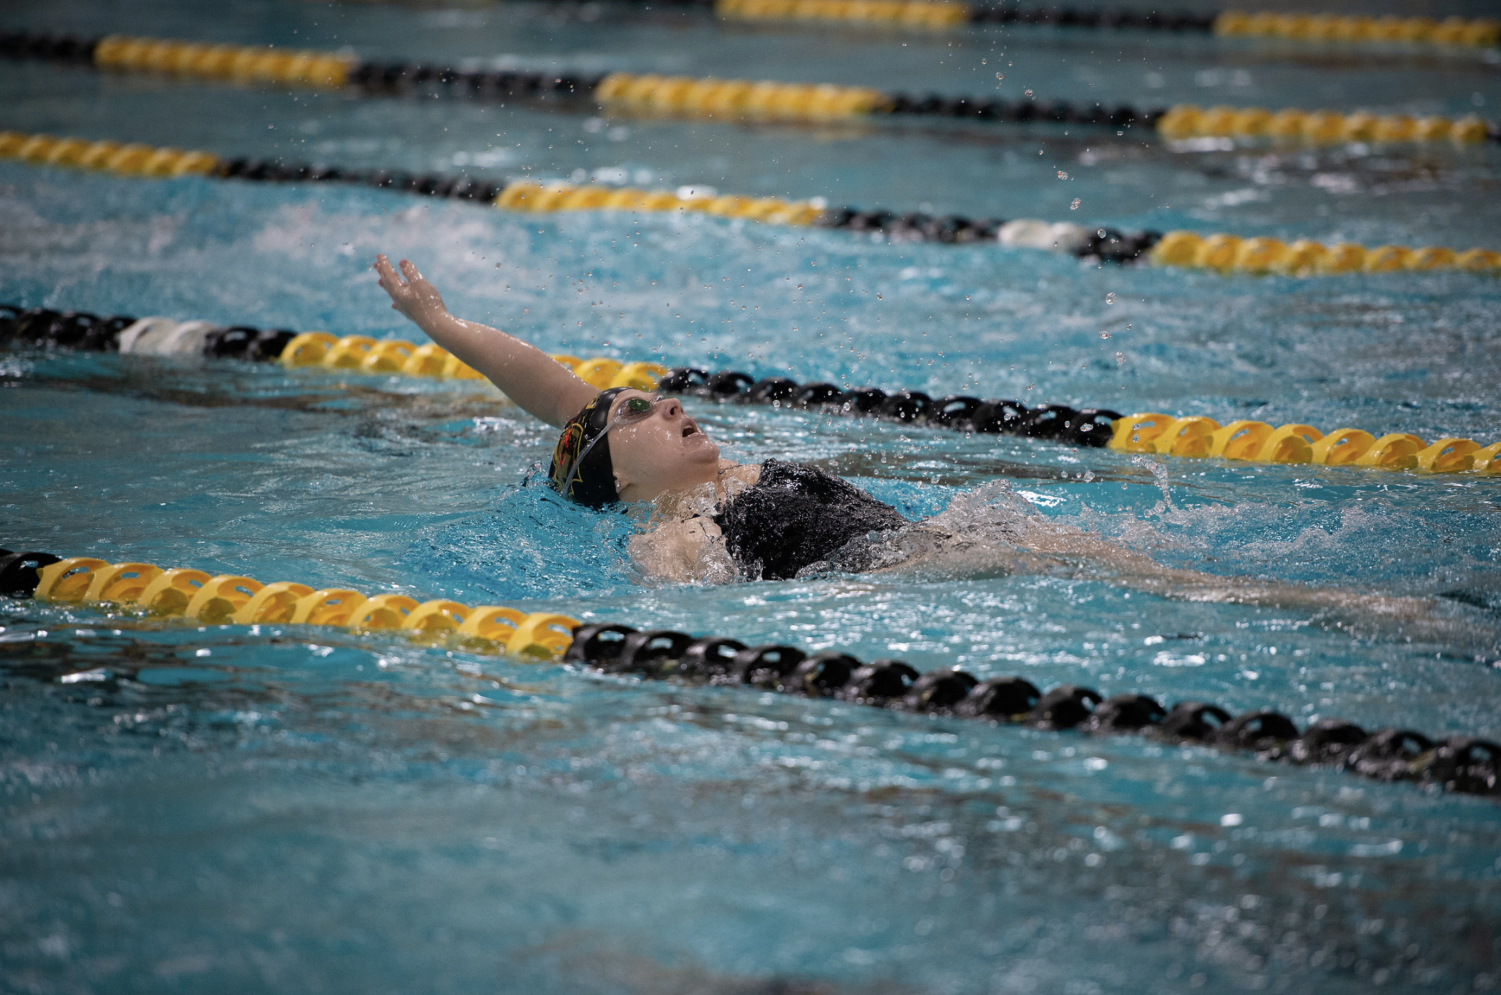 A UW Oshkosh swimmer performs the backstroke at the home meet against UW-Eau Claire on Oct. 12.